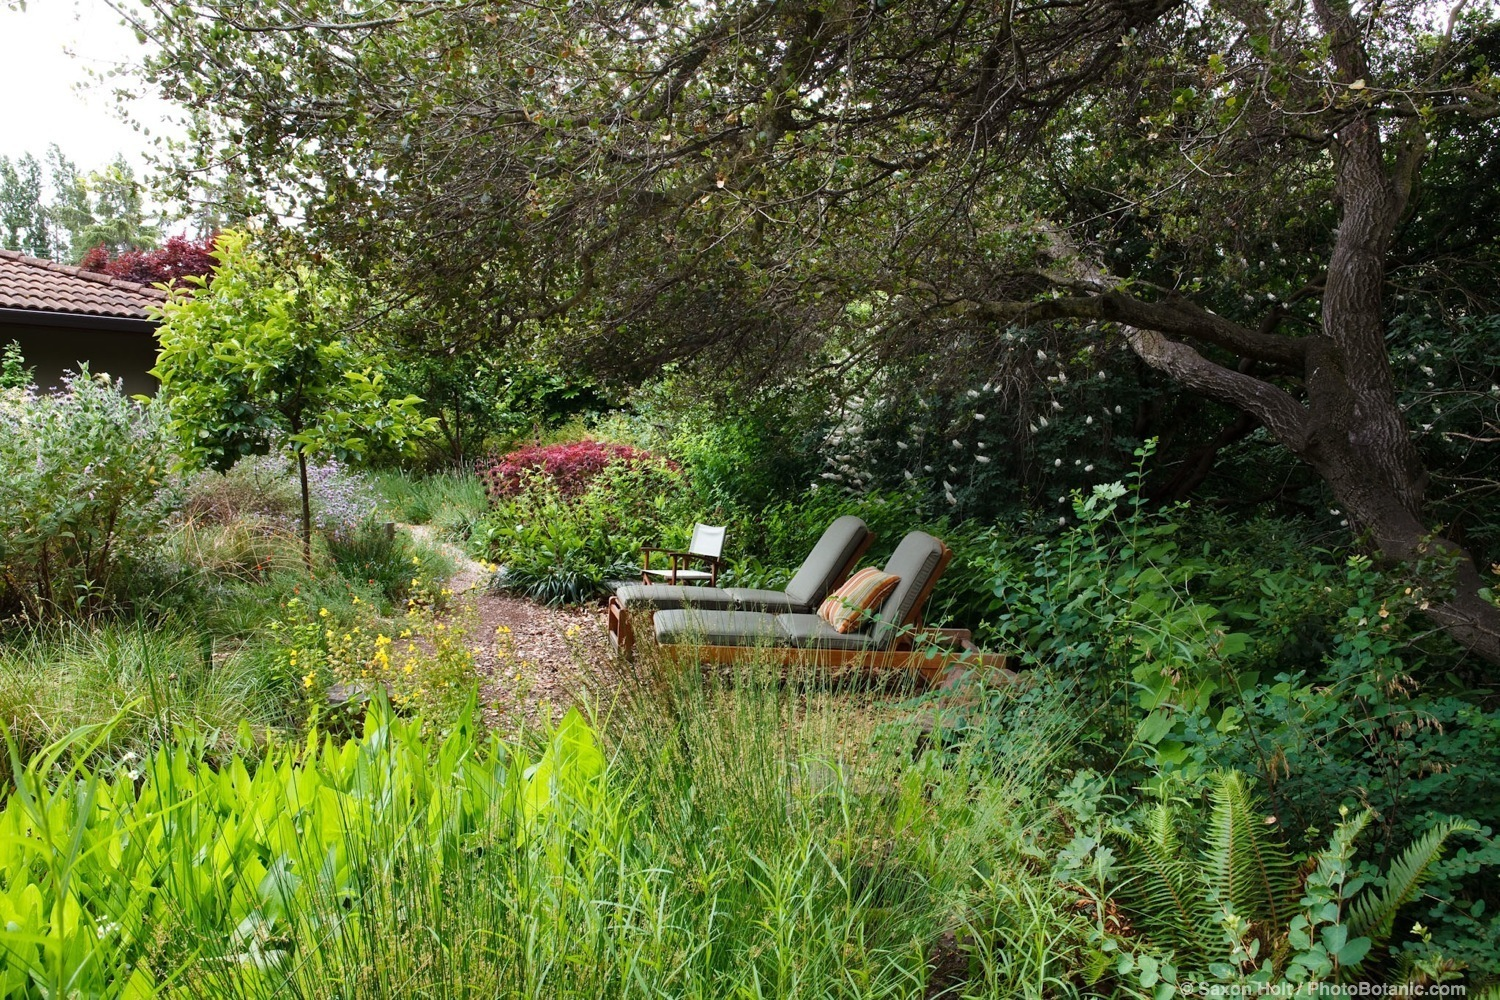 How To Plant Grass Under Oak Trees : Lounge chairs under shady oak trees in california native plant garden